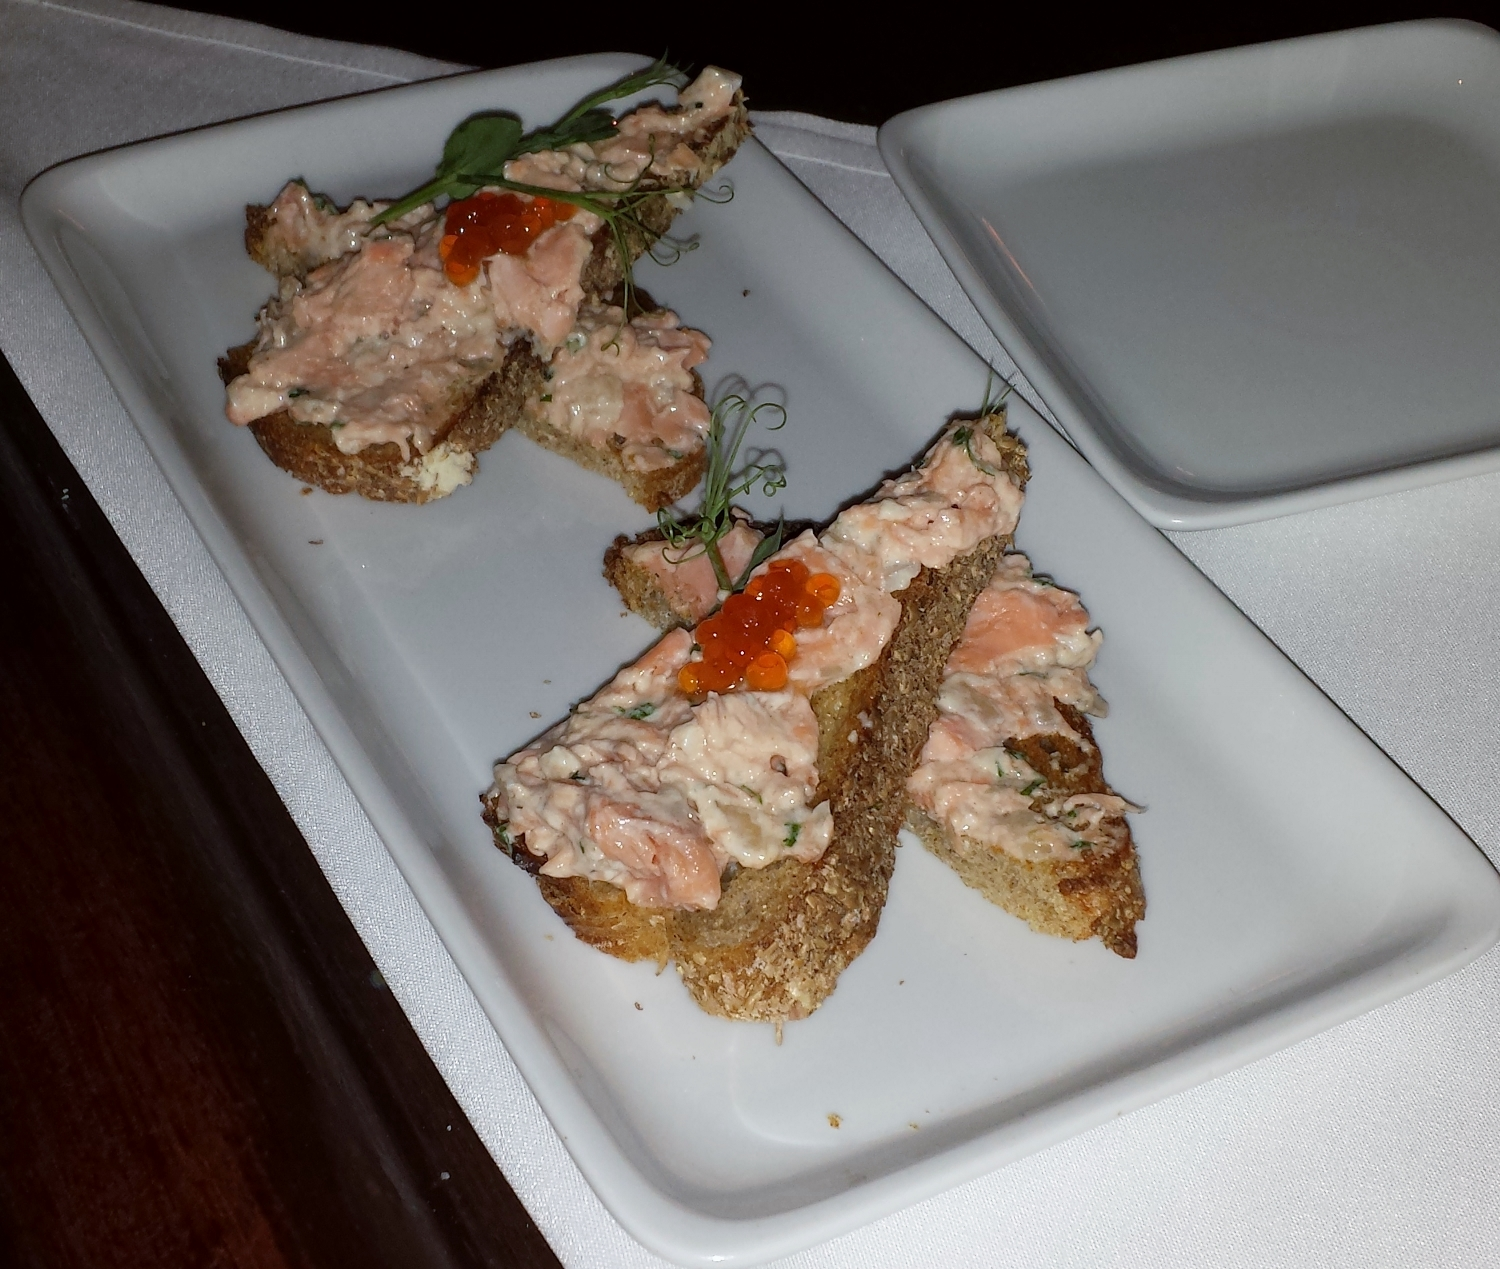 """They smoke """"craft raised"""" salmon from Skuna Bay on Vancouver Island and turn it into a dip, which is spread on toasted ale bread and topped with salmon roe. Great party food!"""